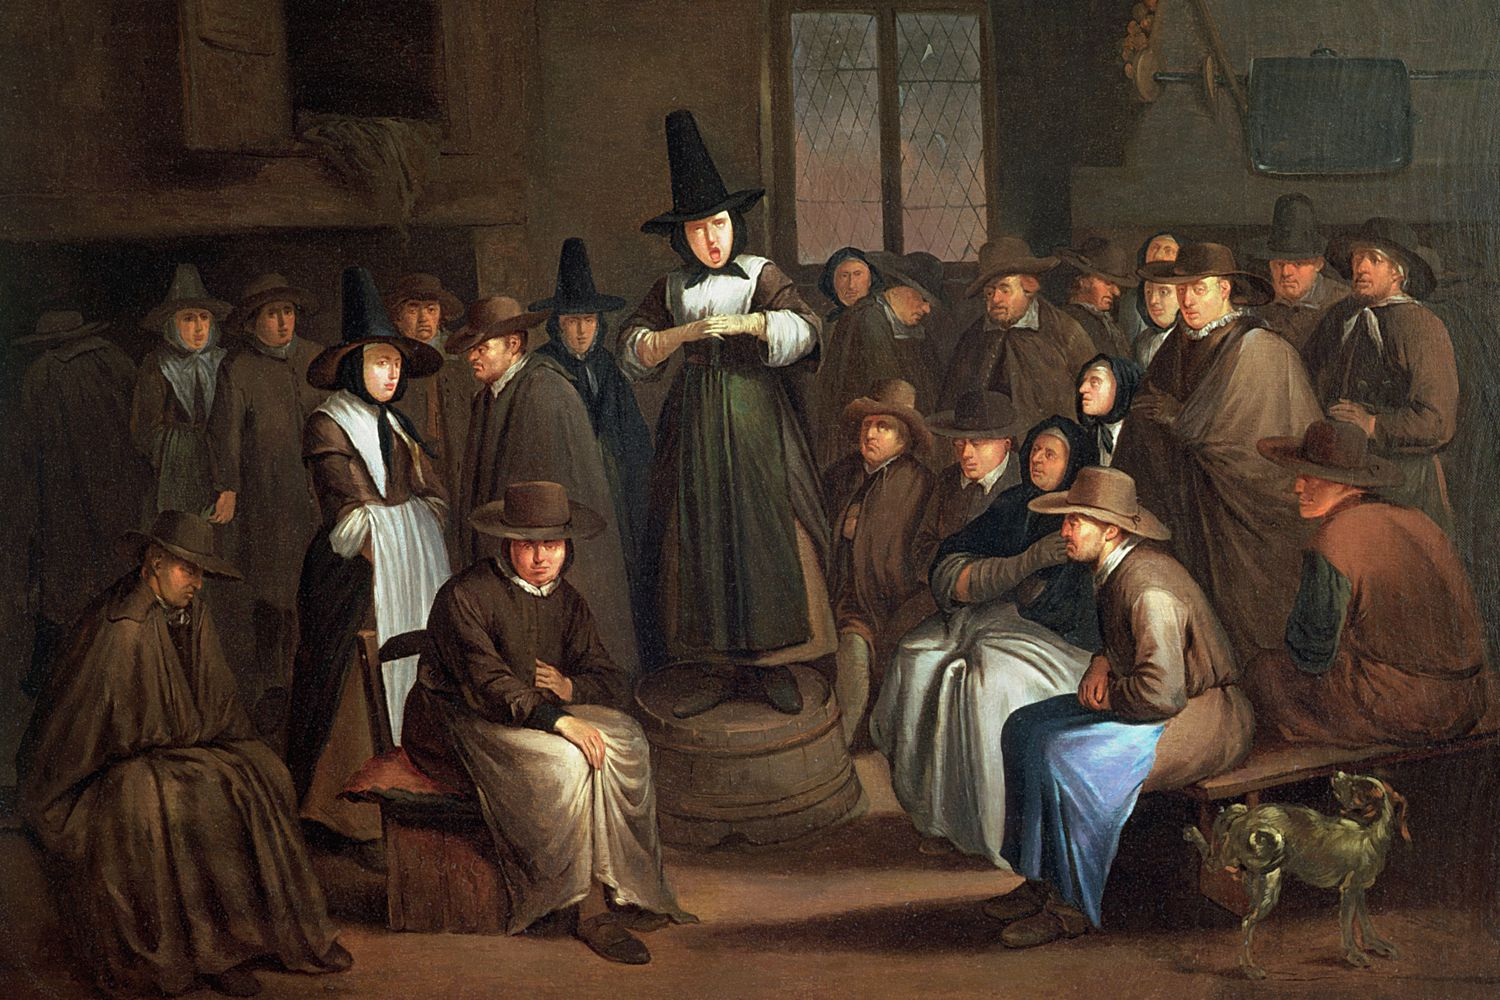 Quaker Beliefs And Worship Practices As A Religion